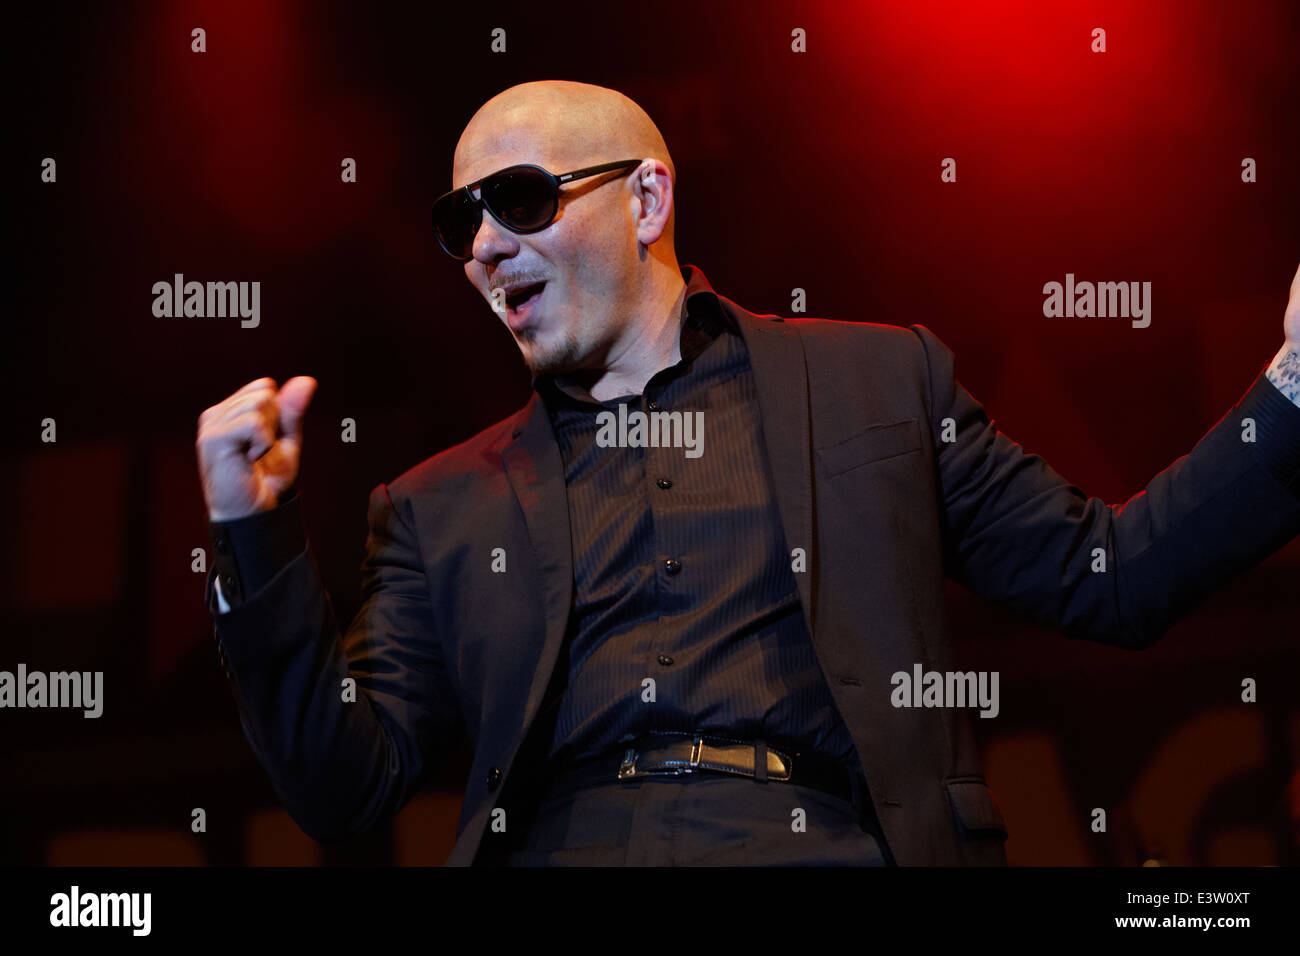 Armando Christian Pérez, known by the stage name Pitbull in concert, Pitbull live on stage - Stock Image